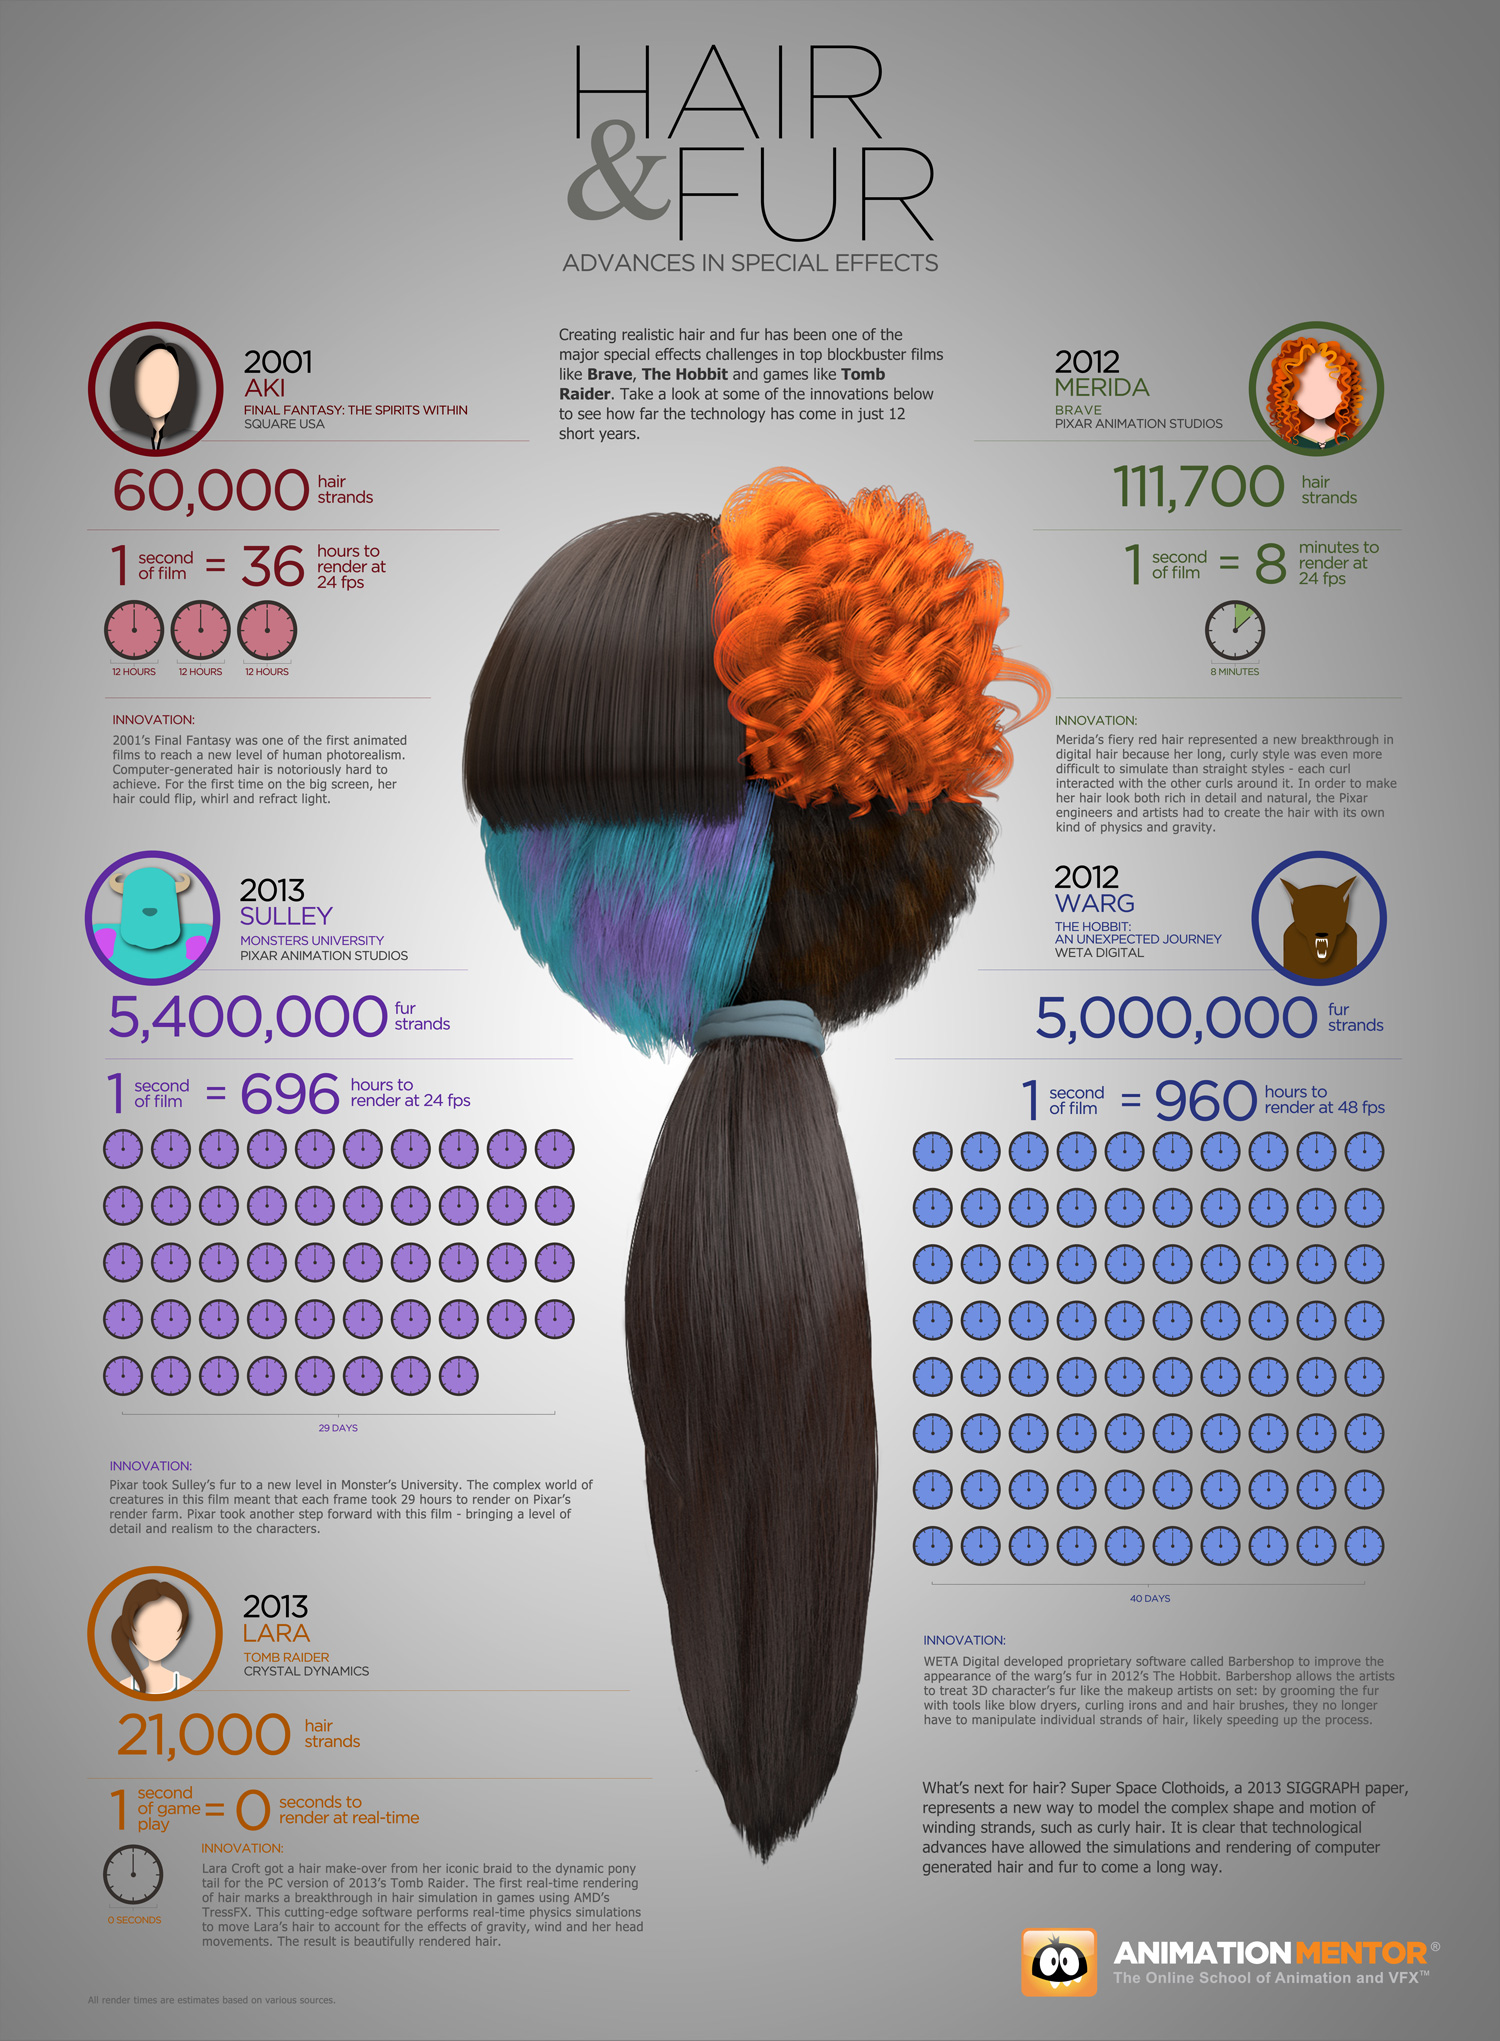 HairFurRenderingCGSpecialEffects Hair & fur advances in special effects [Infographic]